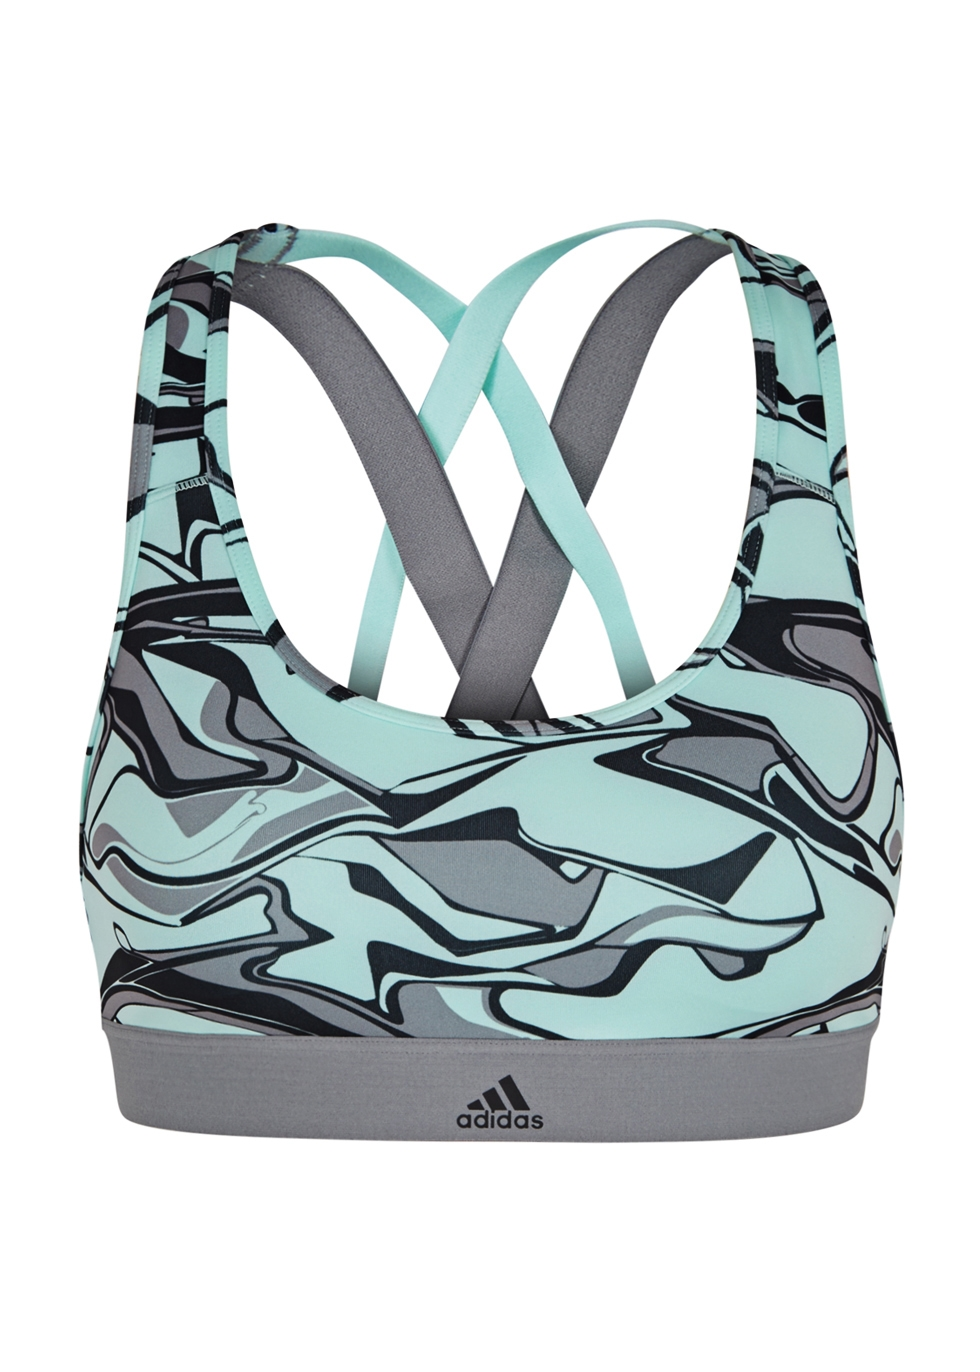 ADIDAS TRAINING Adidas Training Don'T Rest X Printed Jersey Bra Top in Grey